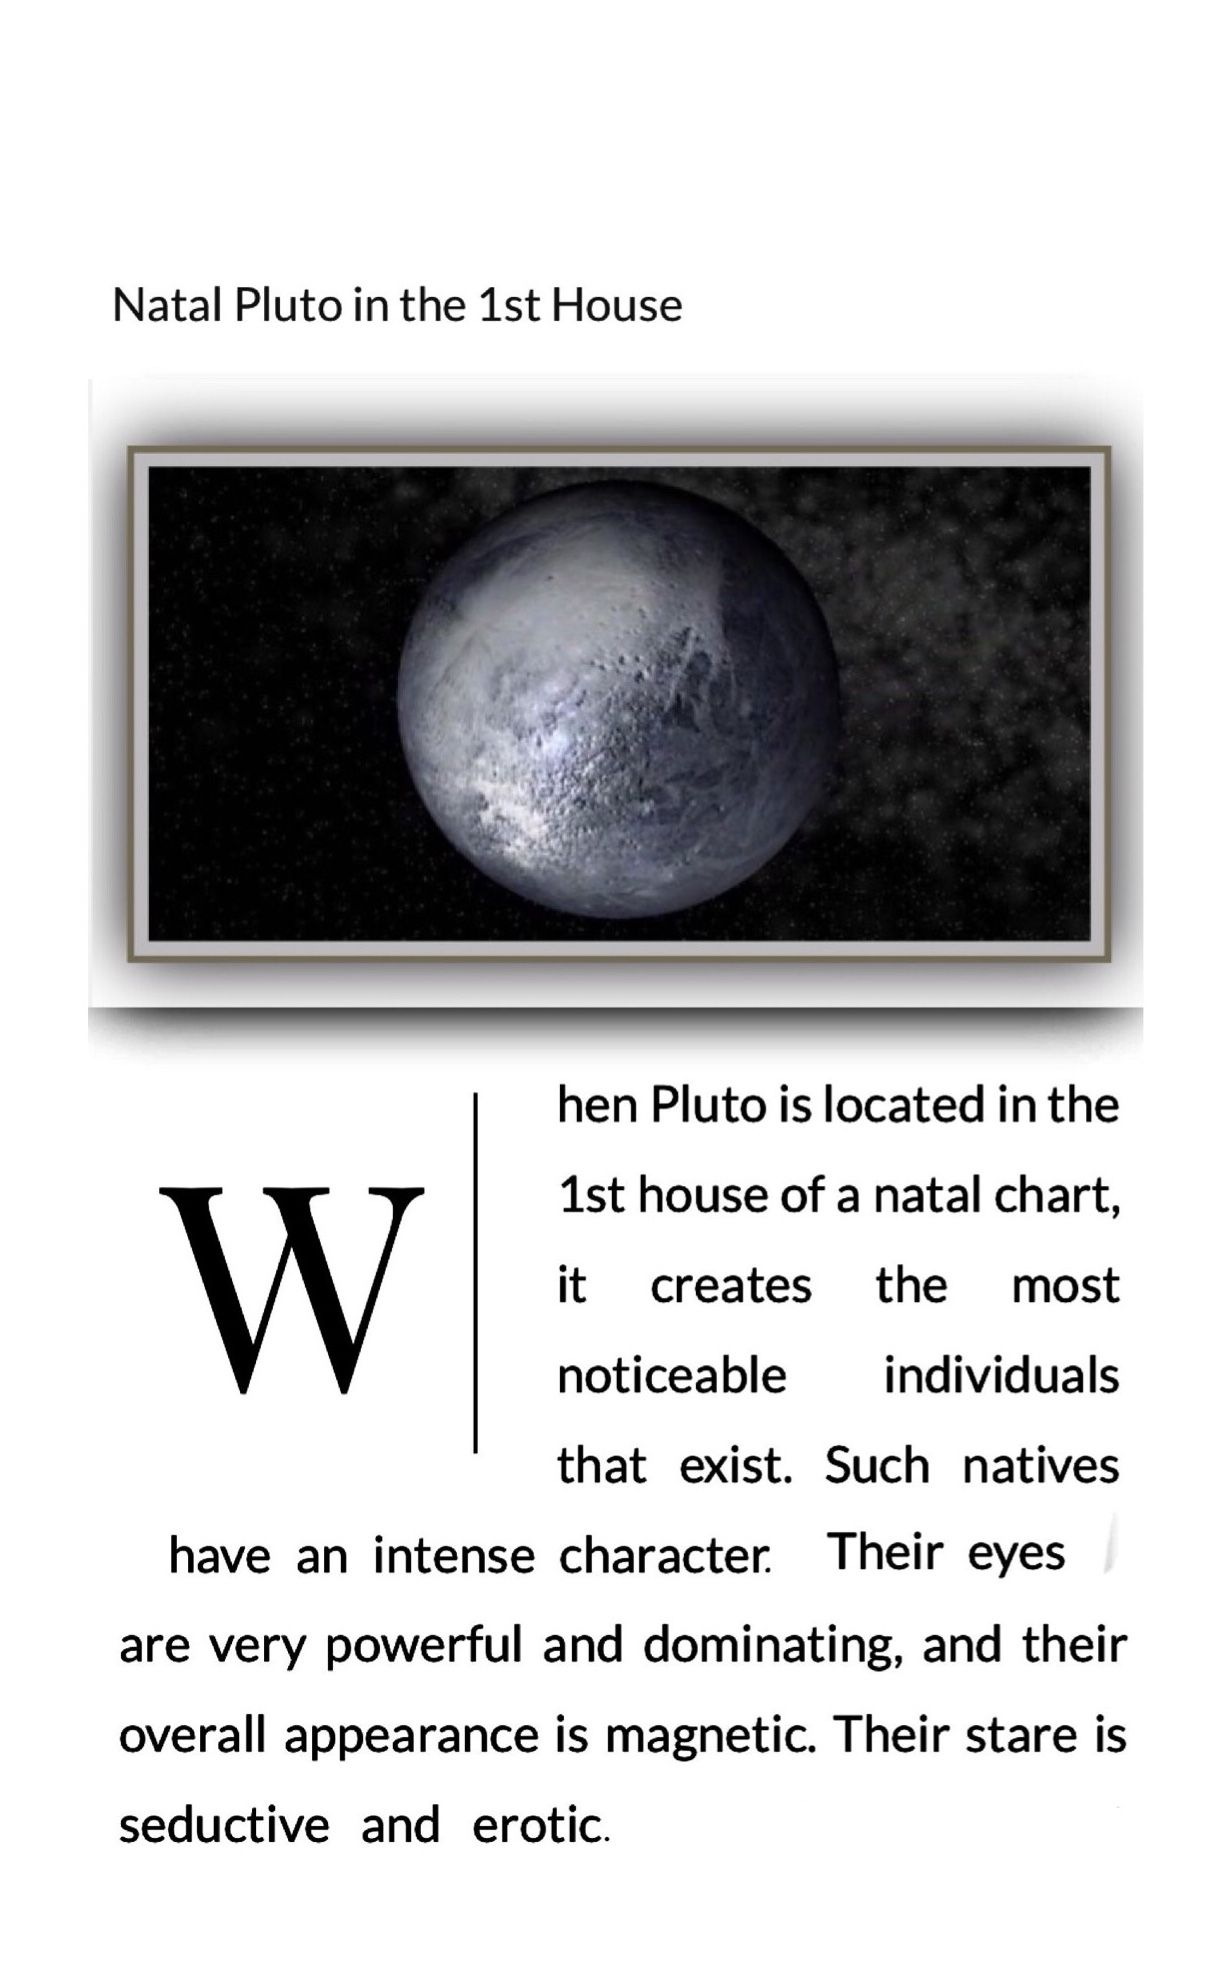 Pluto 1st house conjunct ascendant | Sun in Leo, Moon in